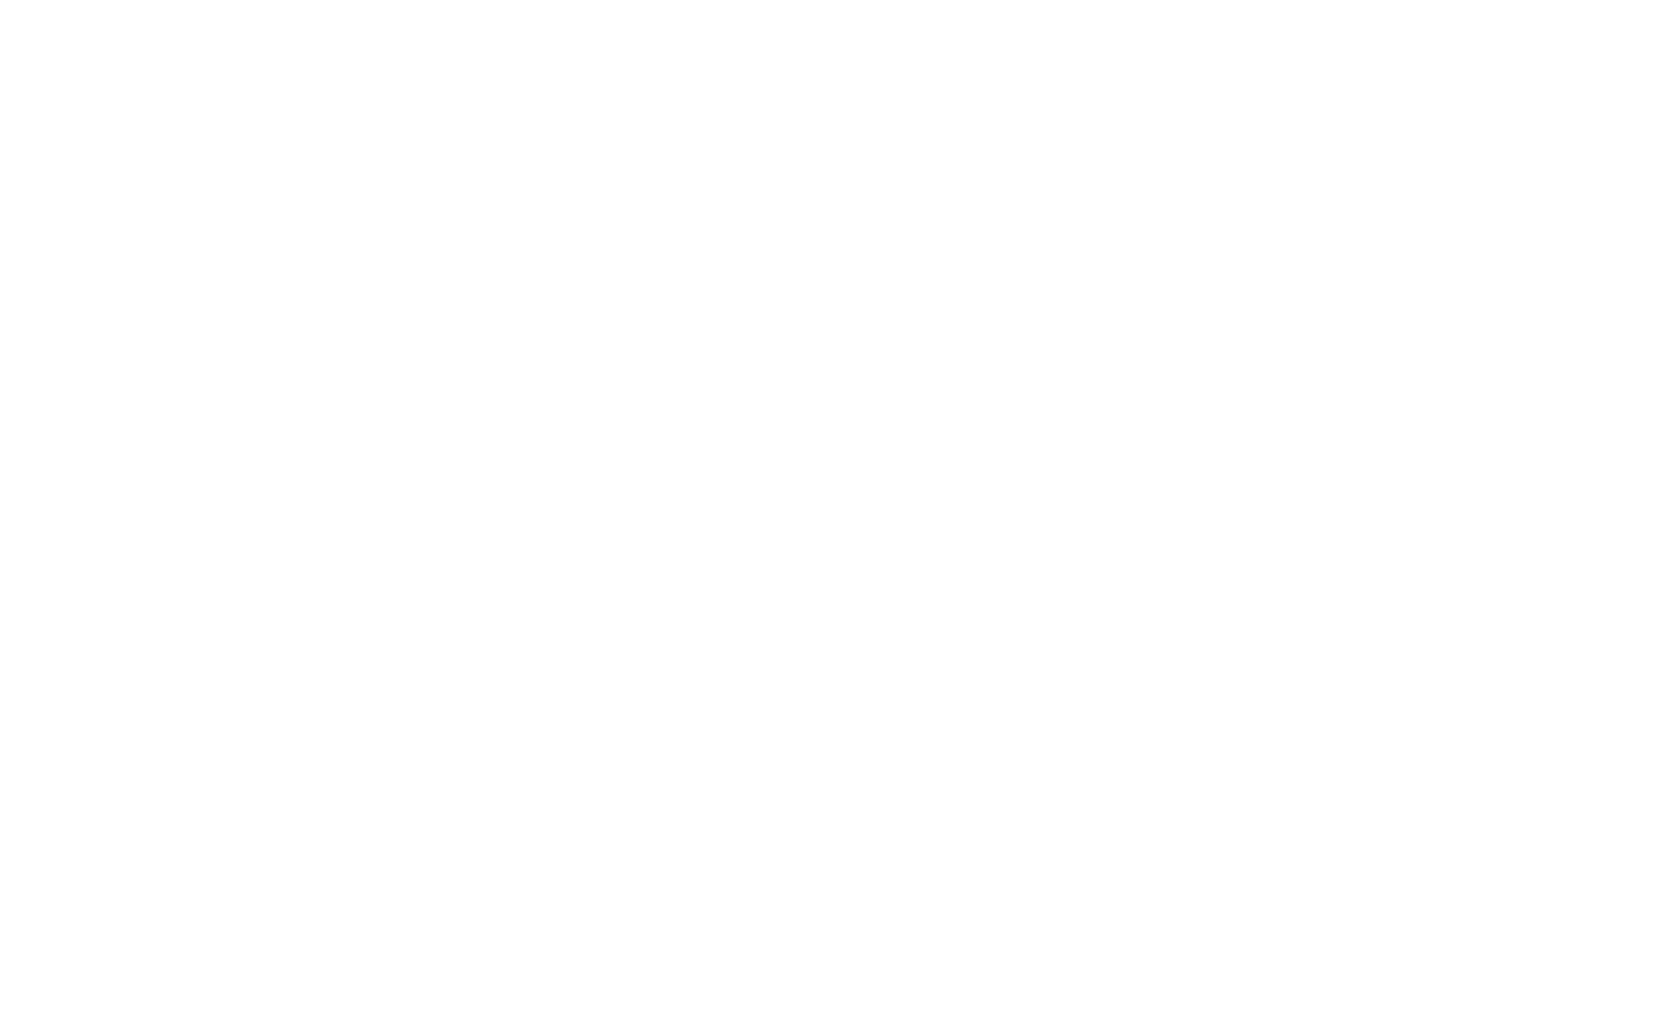 Evergreen Hood River: Cannabis Supply